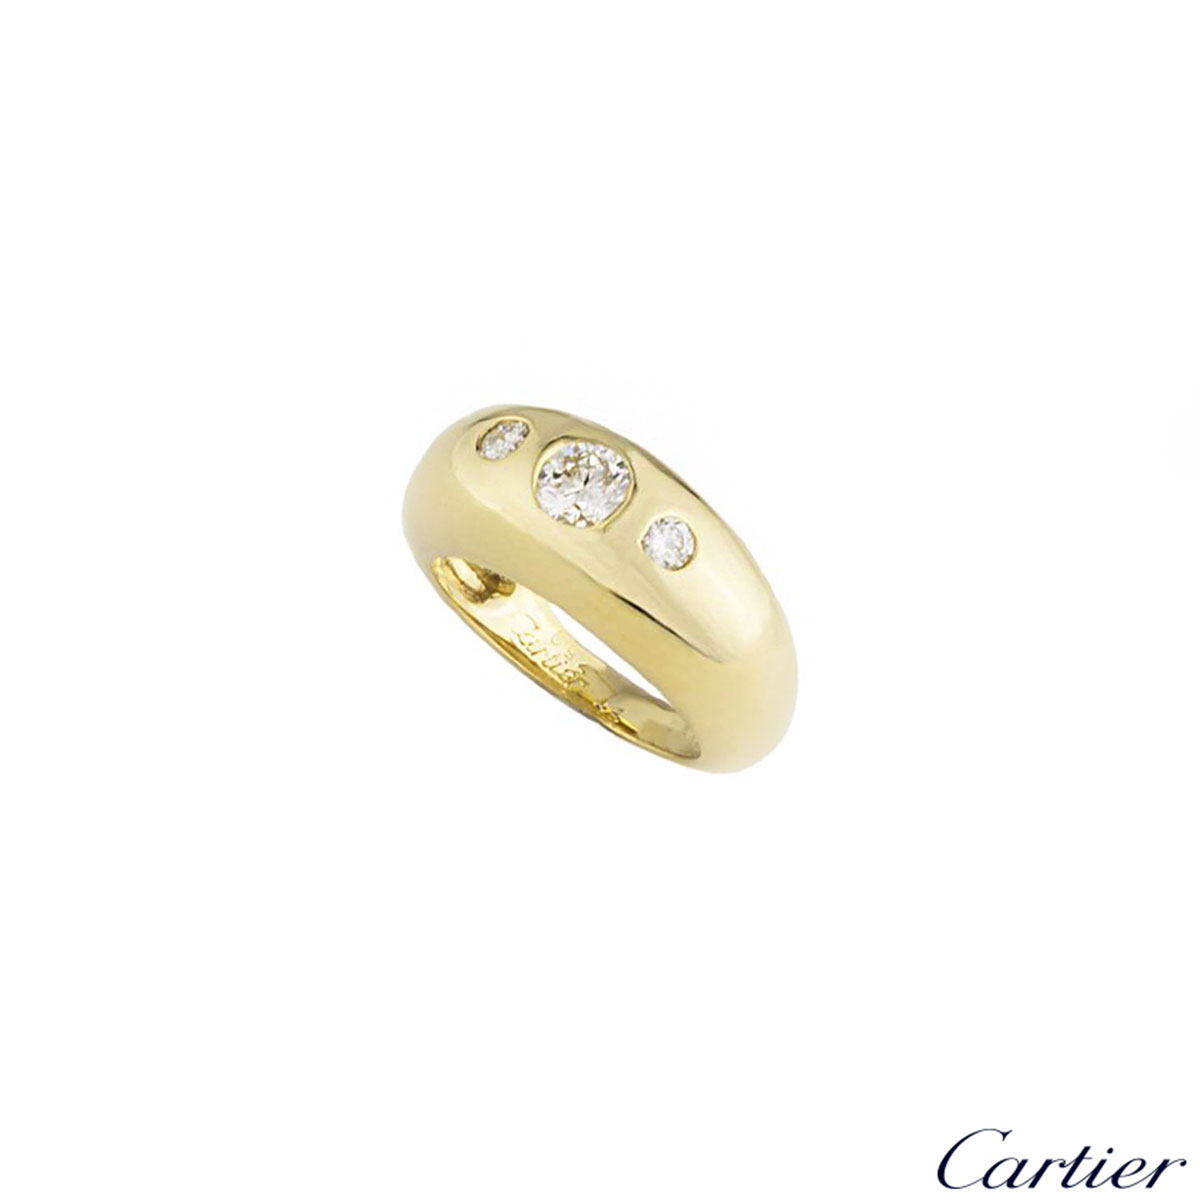 Cartier 18k Yellow Gold Diamond Set Dress Ring